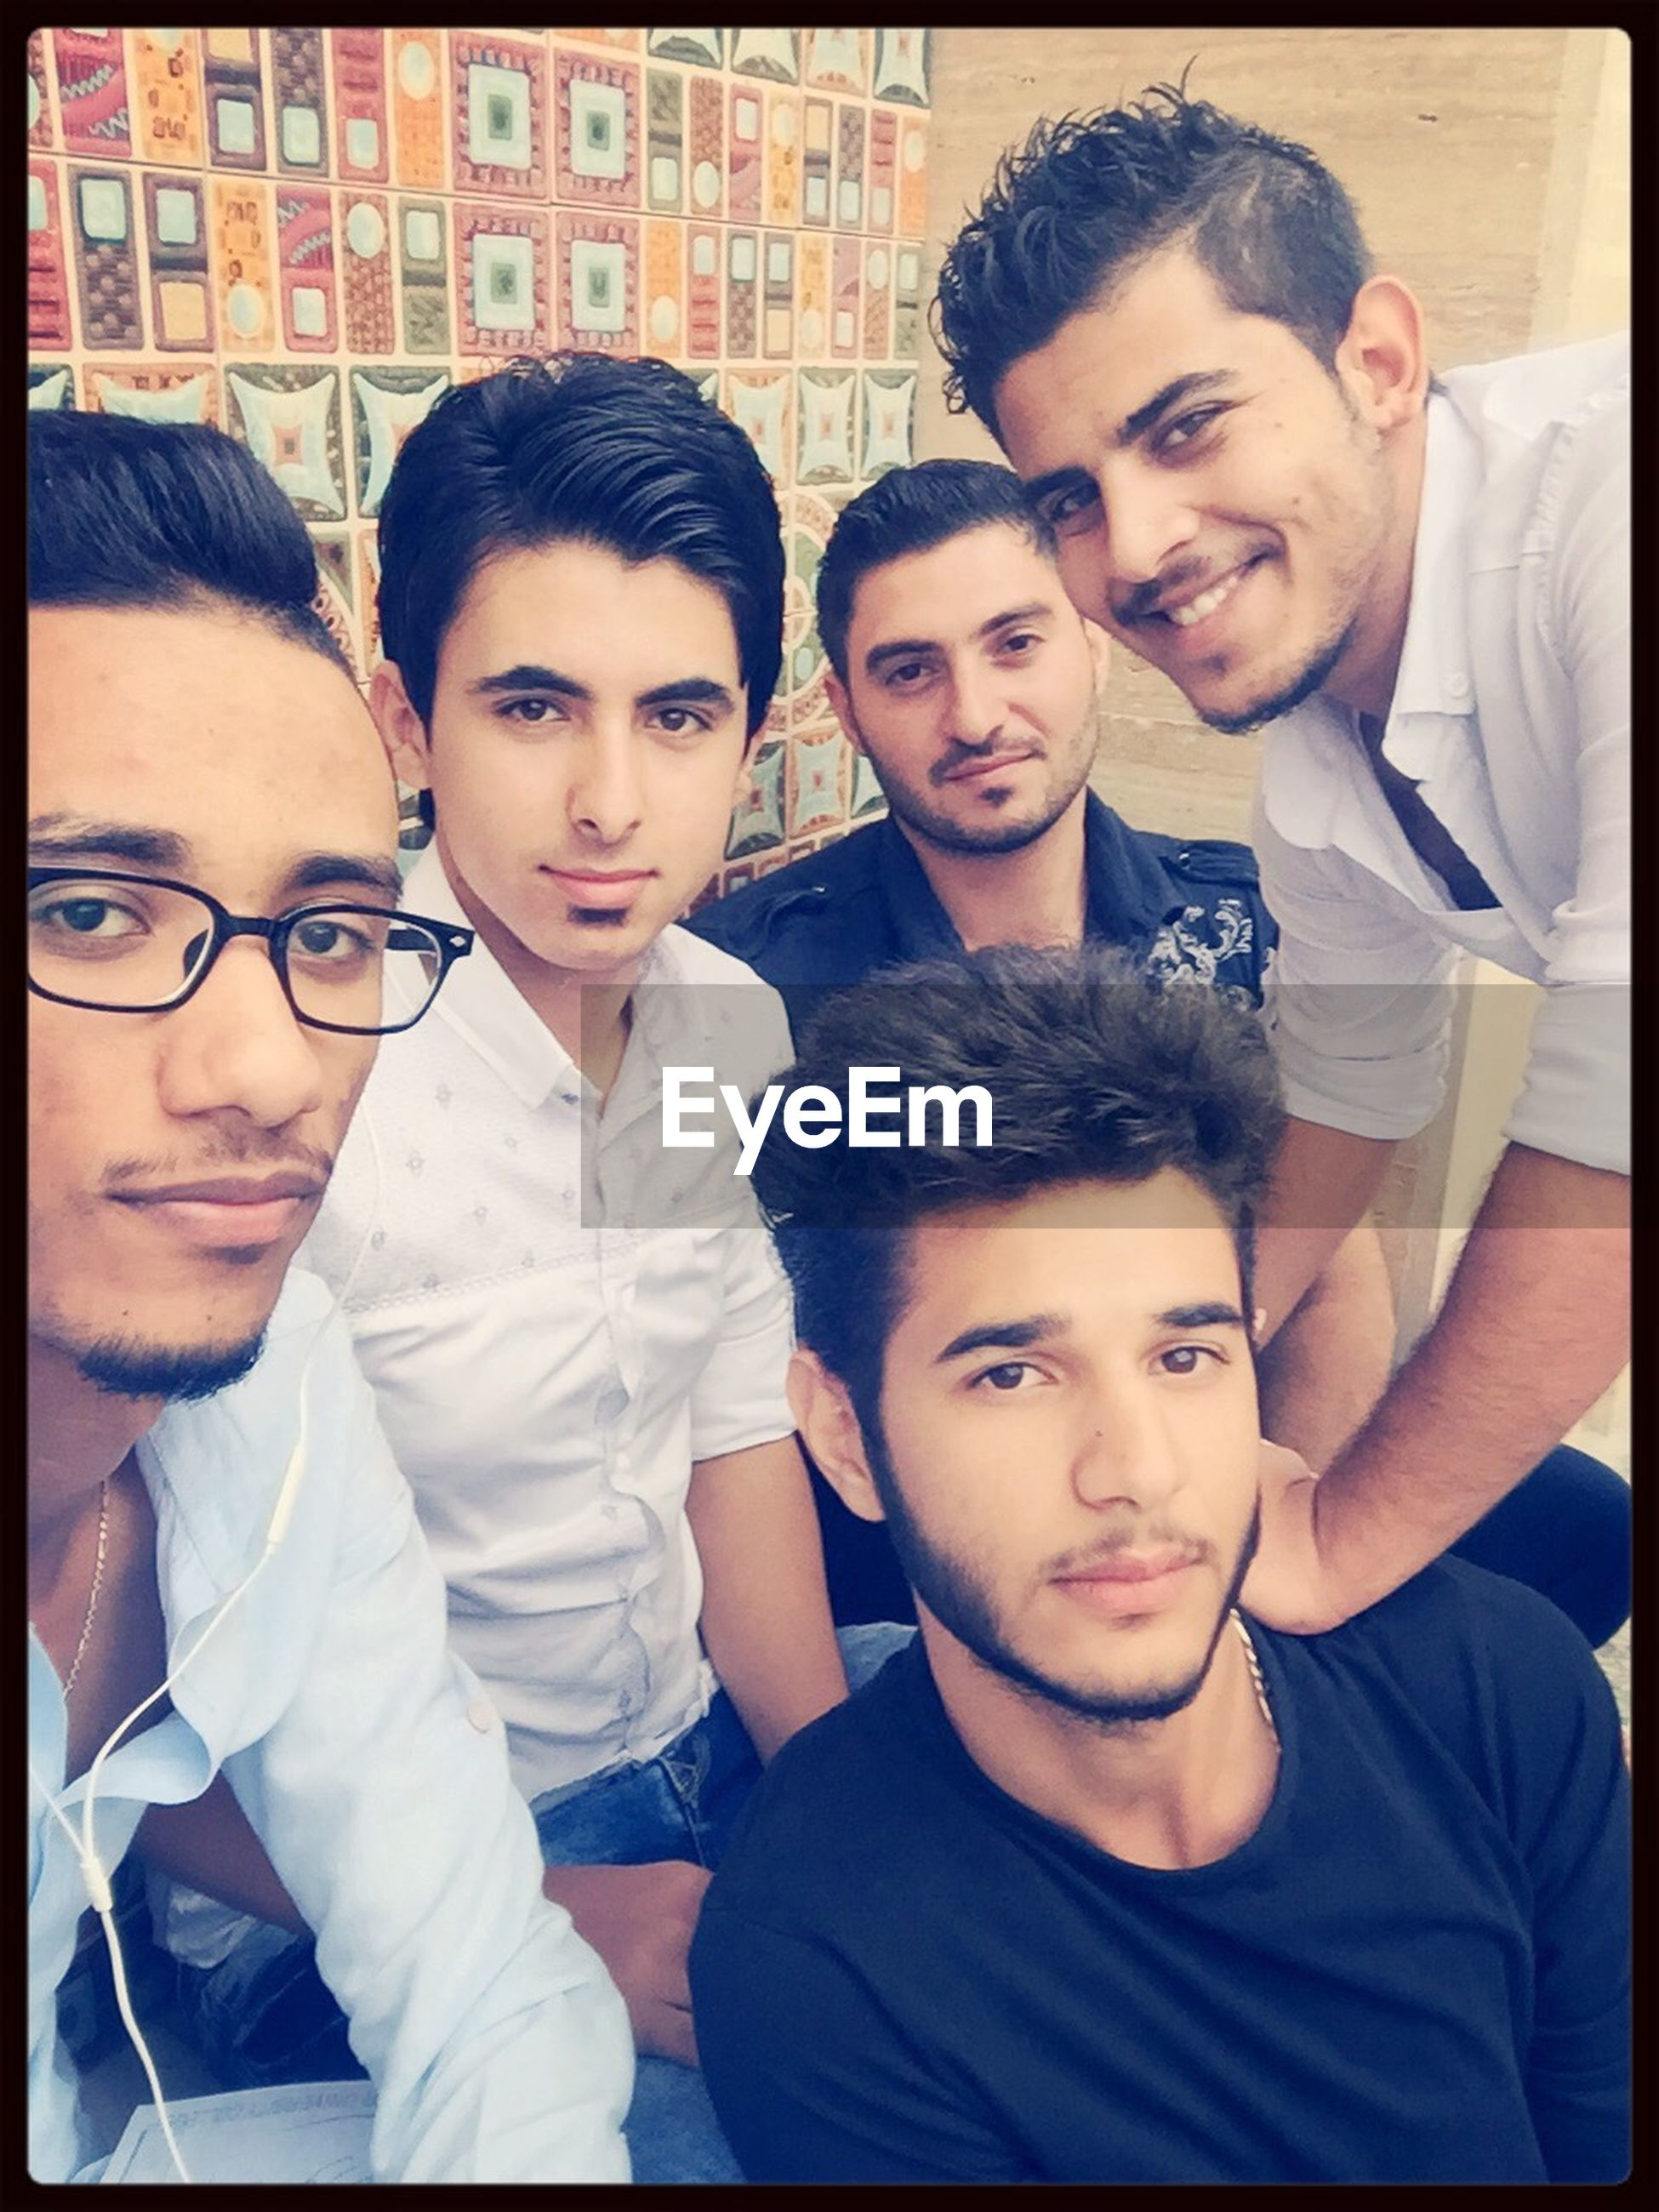 togetherness, bonding, portrait, person, looking at camera, love, lifestyles, smiling, happiness, leisure activity, friendship, family, front view, young men, young adult, casual clothing, transfer print, sister